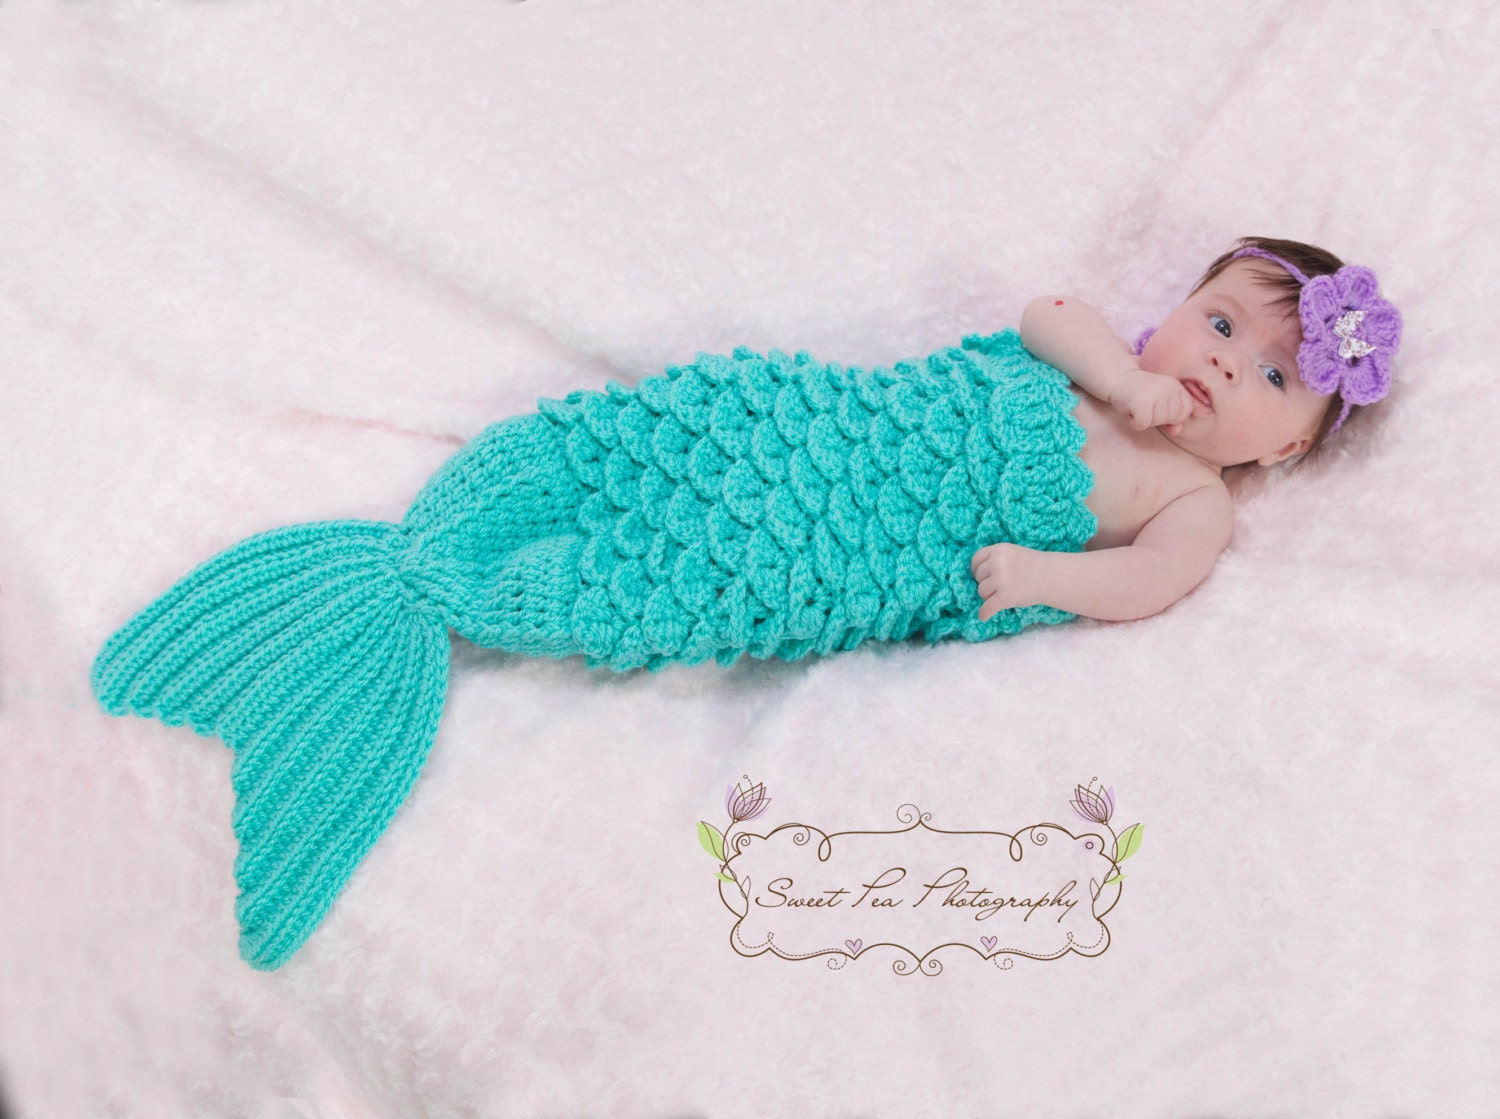 Crochet Patterns Mermaid : Crochet Mermaid Tail & Headband Prop INSTANT DOWNLOAD PDF from by ...